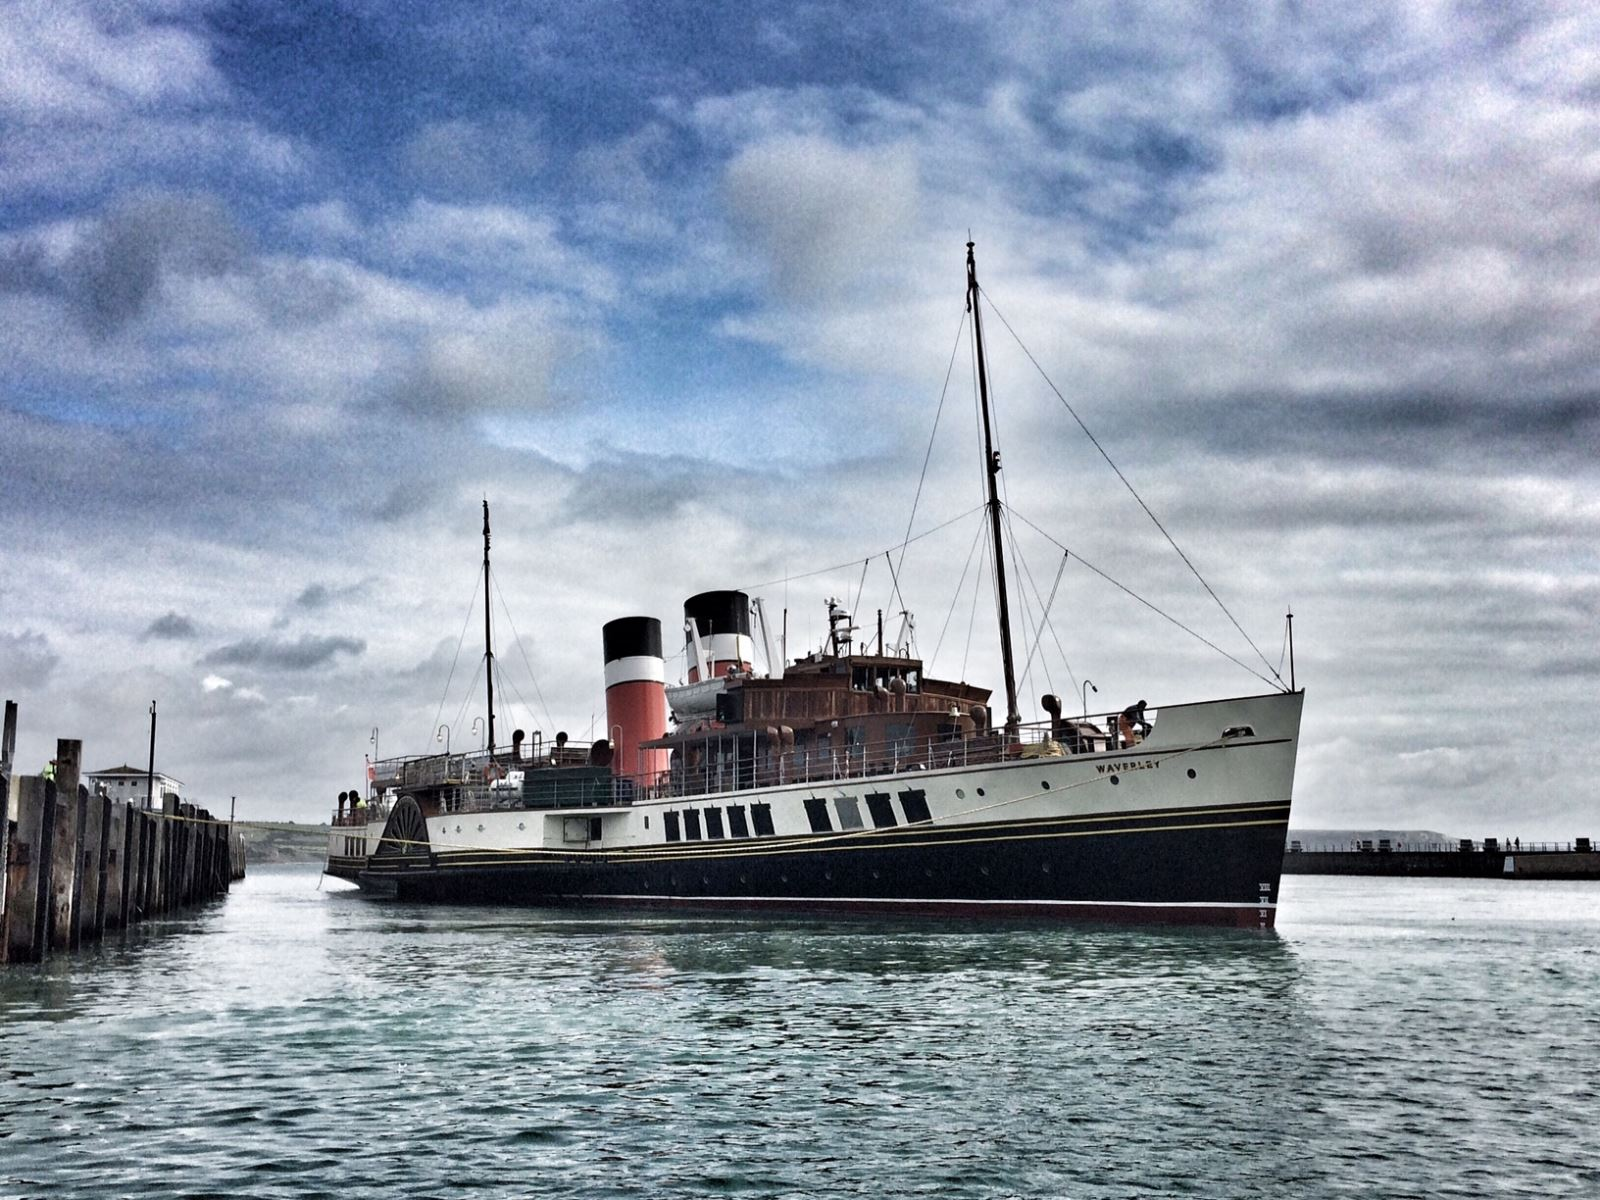 Waverley Paddlesteamer in Weymouth Harbour